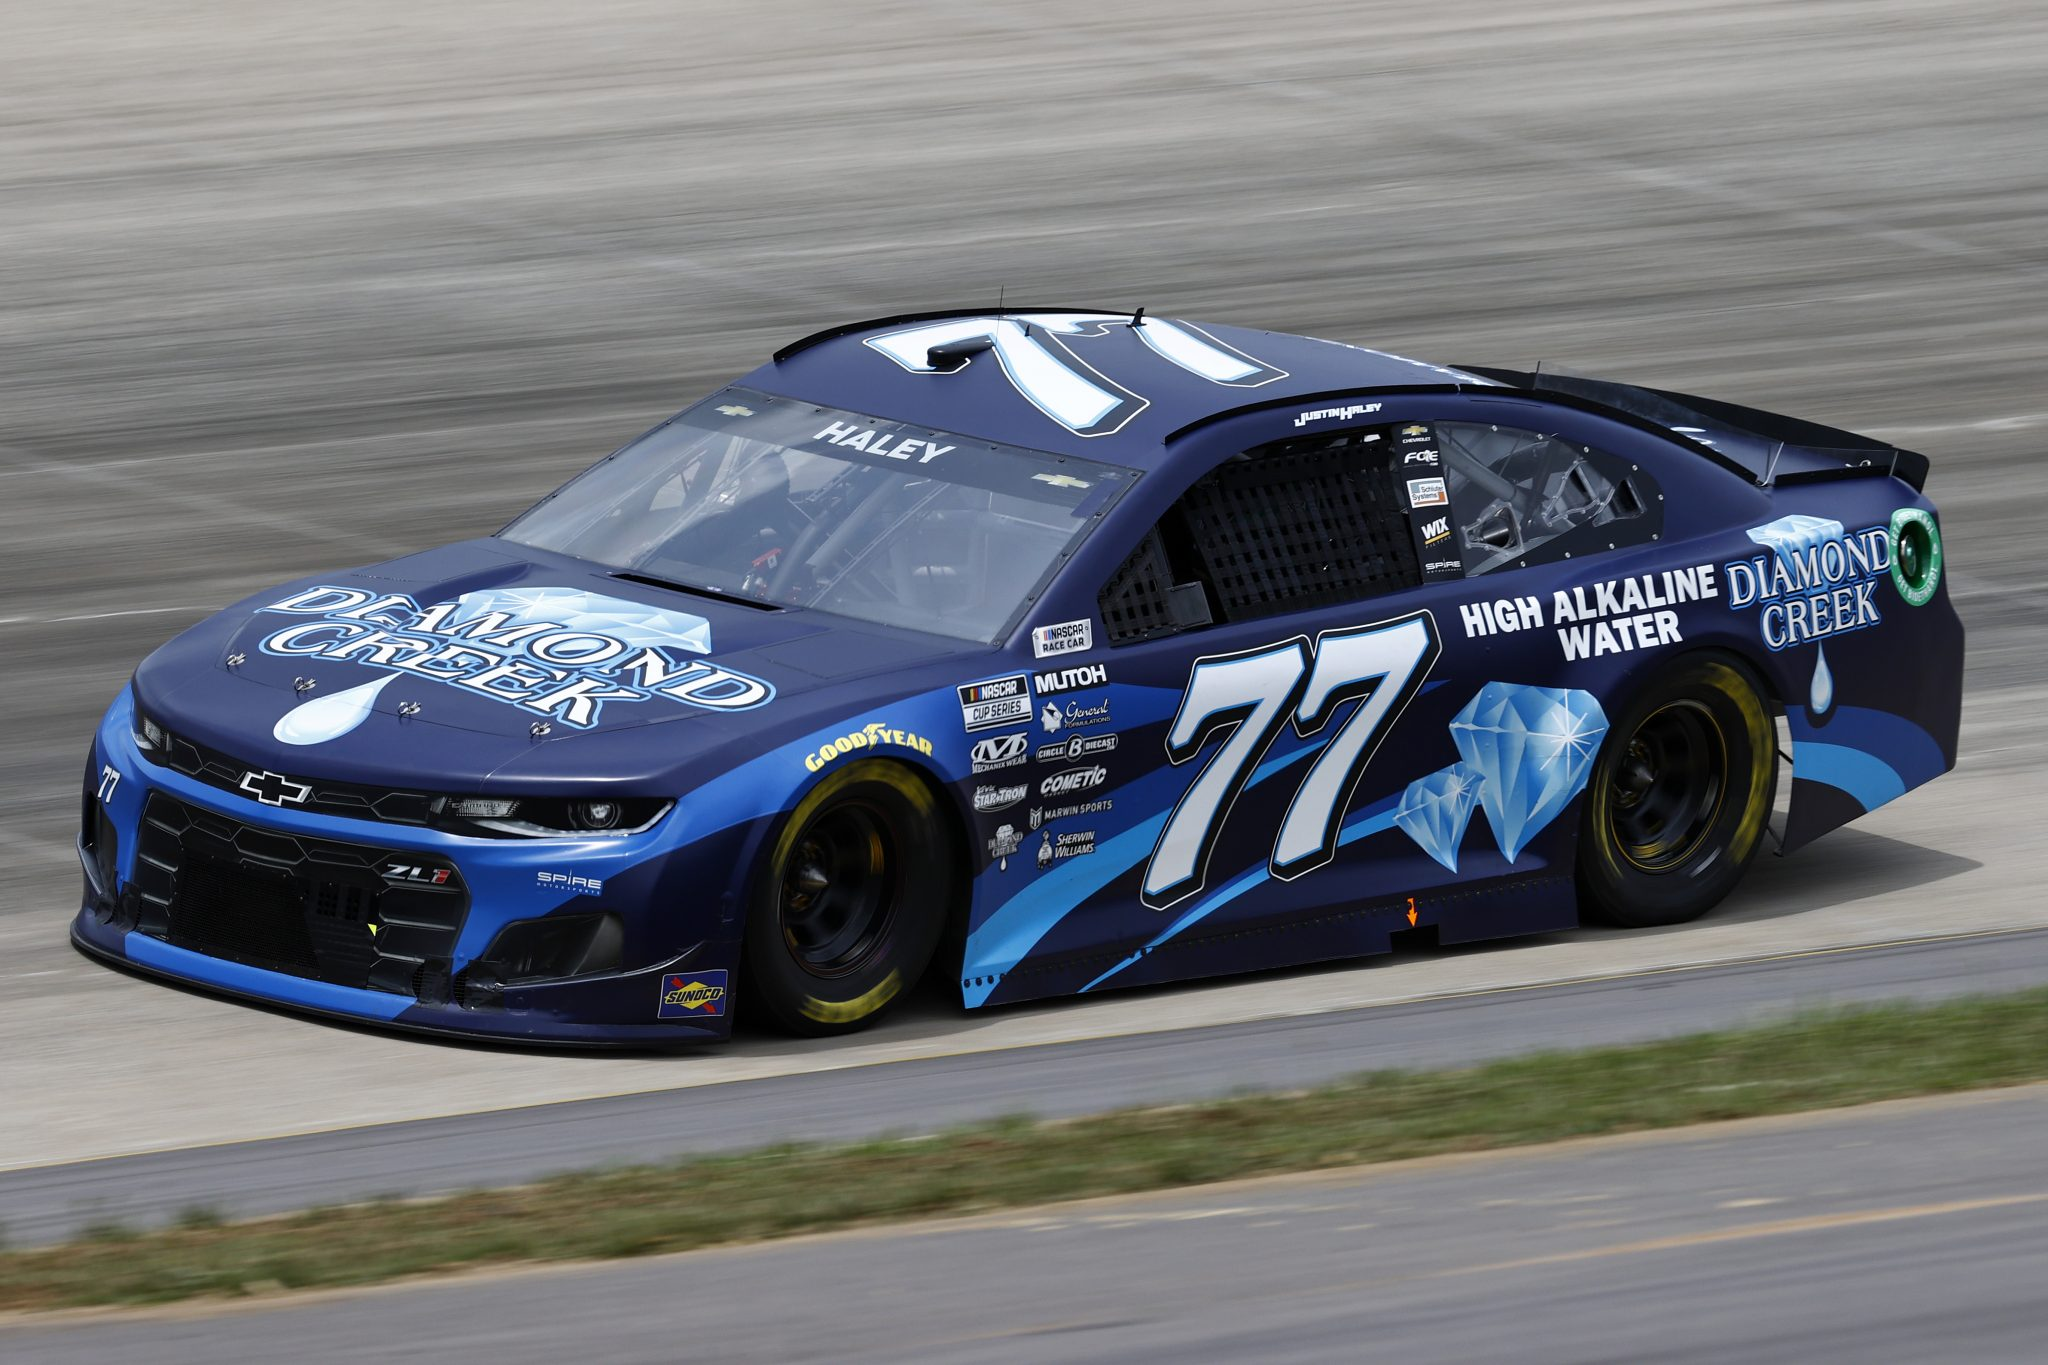 LEBANON, TENNESSEE - JUNE 19: Justin Haley, driver of the #77 Diamond Creek Water Chevrolet, drives during practice for the NASCAR Cup Series Ally 400 at Nashville Superspeedway on June 19, 2021 in Lebanon, Tennessee. (Photo by Jared C. Tilton/Getty Images) | Getty Images